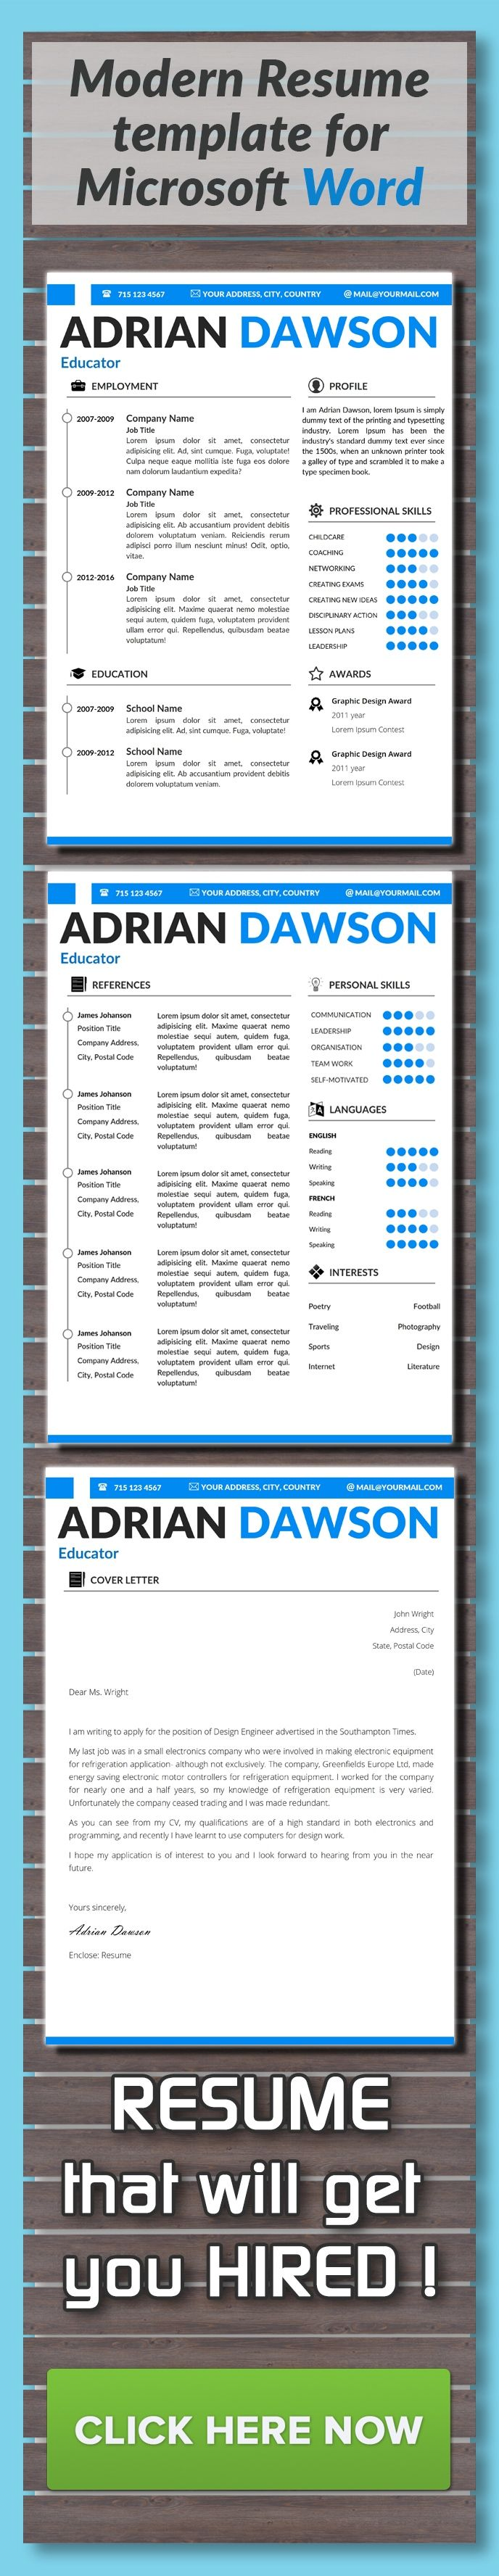 resume template   cover letter  cv template  curriculum vitae  instant download  lebenslauf